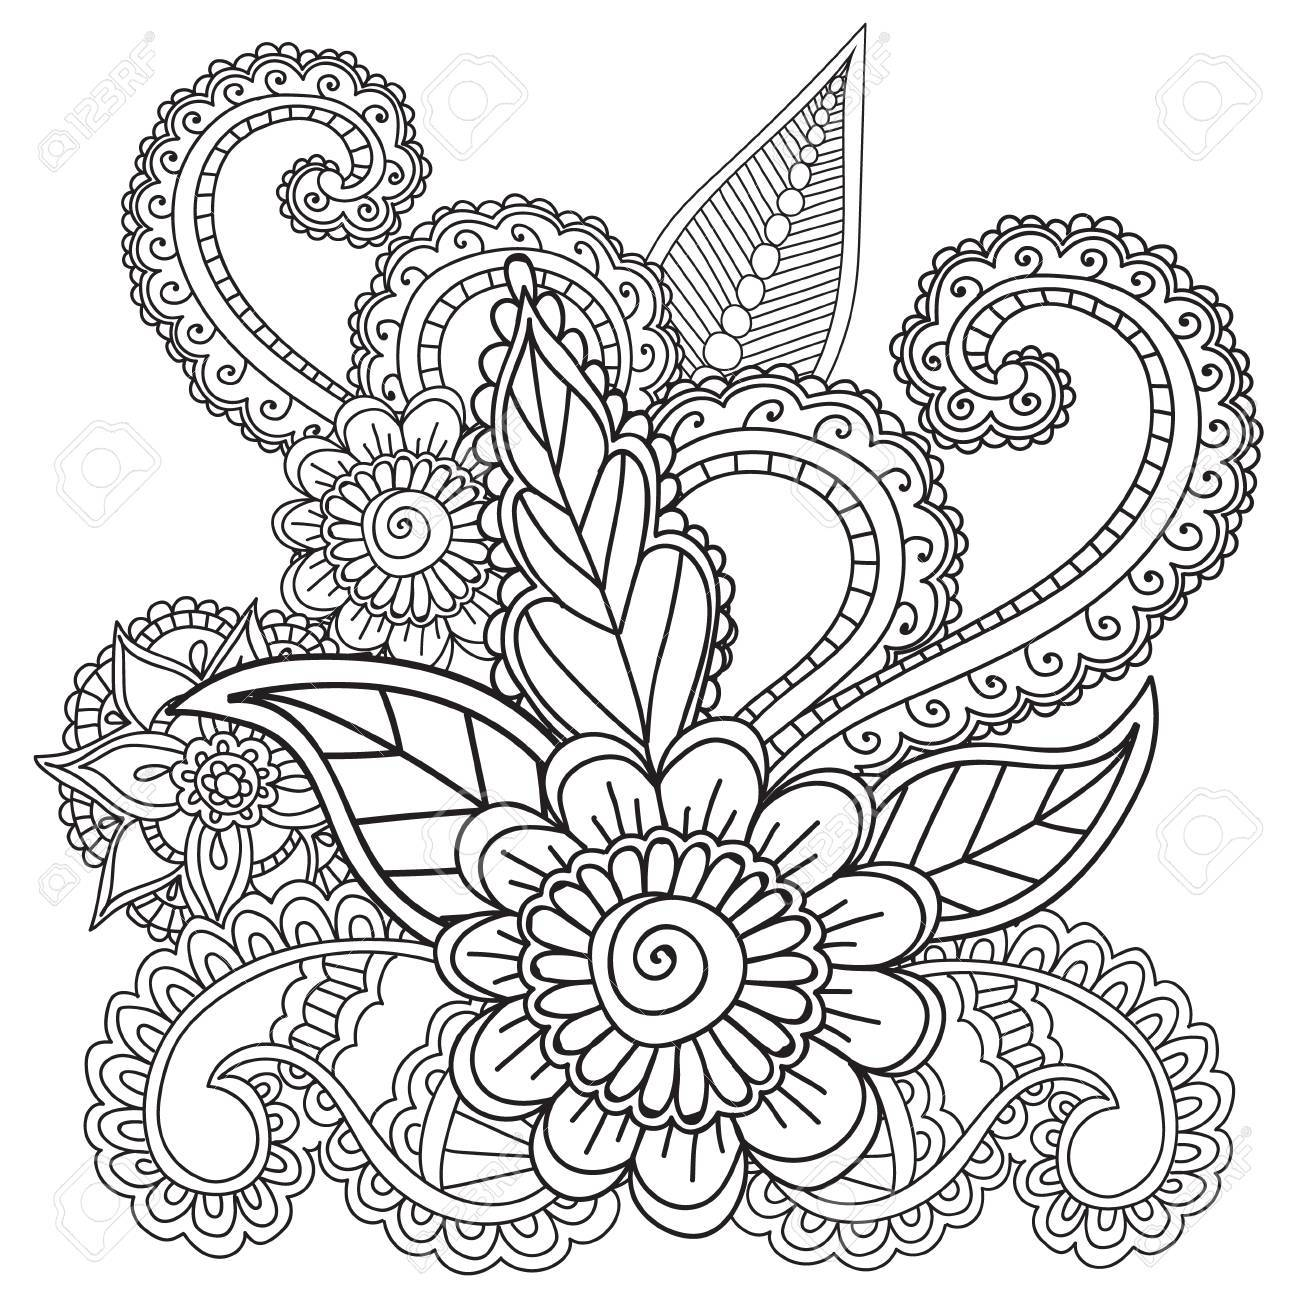 Henna Design Coloring Pages Home on henna design drawing, henna coloring page world, henna tattoo designs, henna heart designs, henna design cartoon, henna design words, henna design printouts, henna animal designs, henna design ideas, henna design shapes, henna design art, henna design cards, henna stencil designs, henna design sketches, henna design wallpaper, henna design printables, henna design masks, henna design patterns, henna design black and white, henna design sheets,